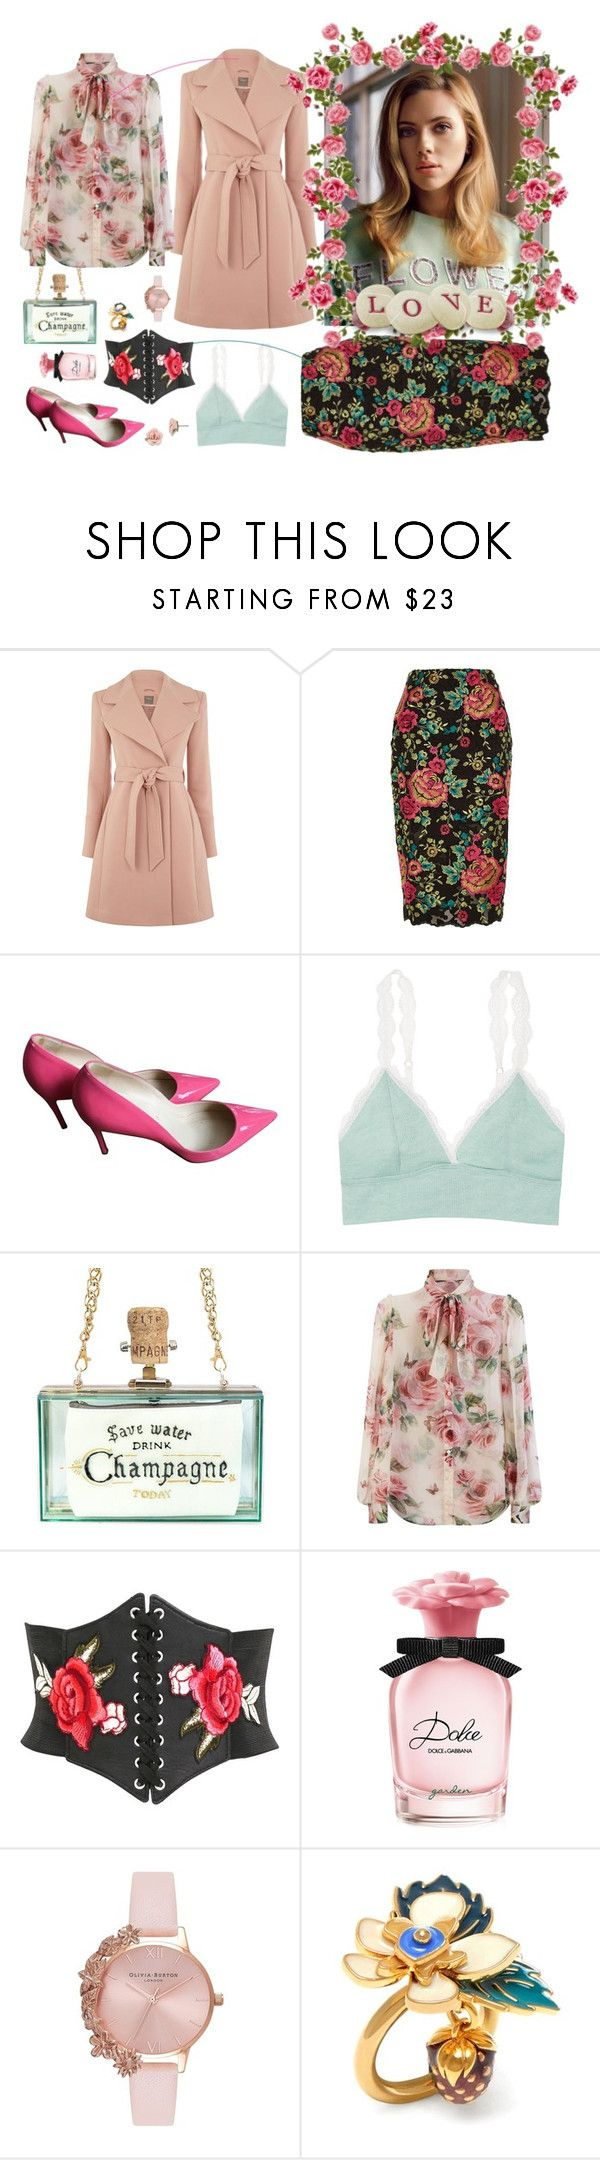 """LOVE FLOWERS"" by mimamsterdam ❤ liked on Polyvore featuring Alasdair, River Island, Christian Louboutin, Victoria's Secret, Dolce&Gabbana, Pilot, Olivia Burton, Mulberry, 1928 and florals"